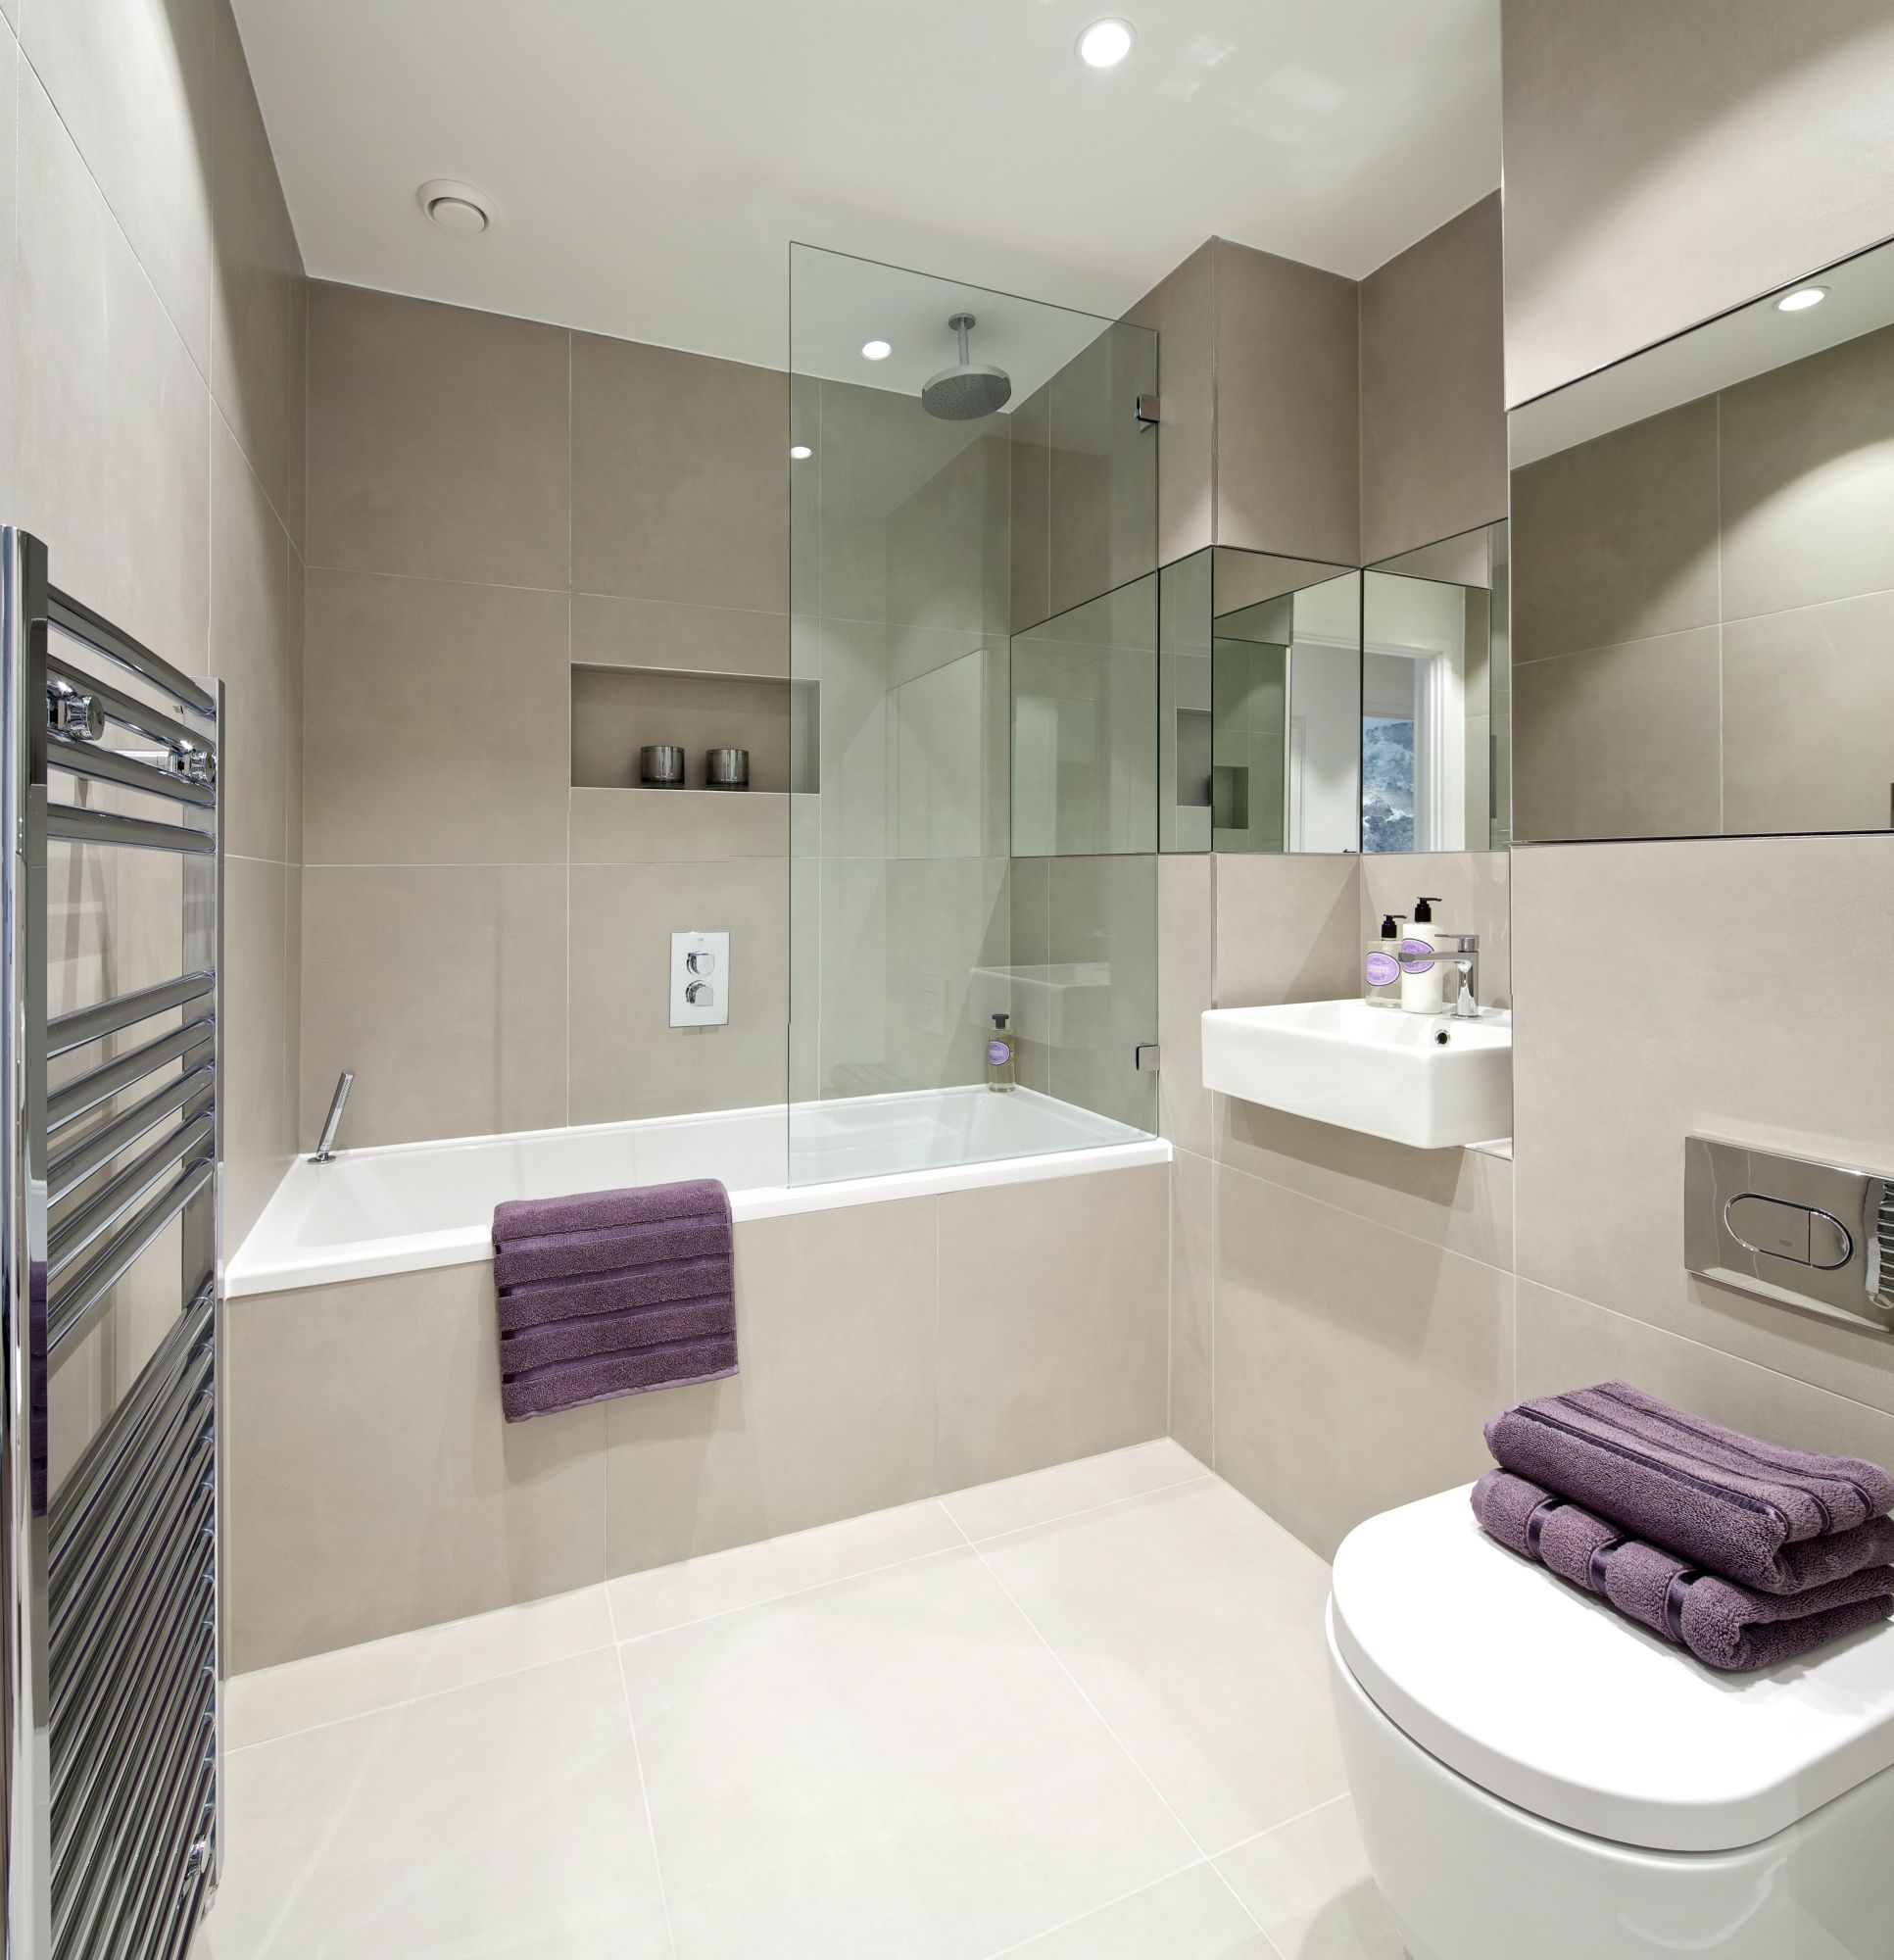 Best Images About Bathroom Ideas On Pinterest Grey Bathrooms - Bathroom ideas